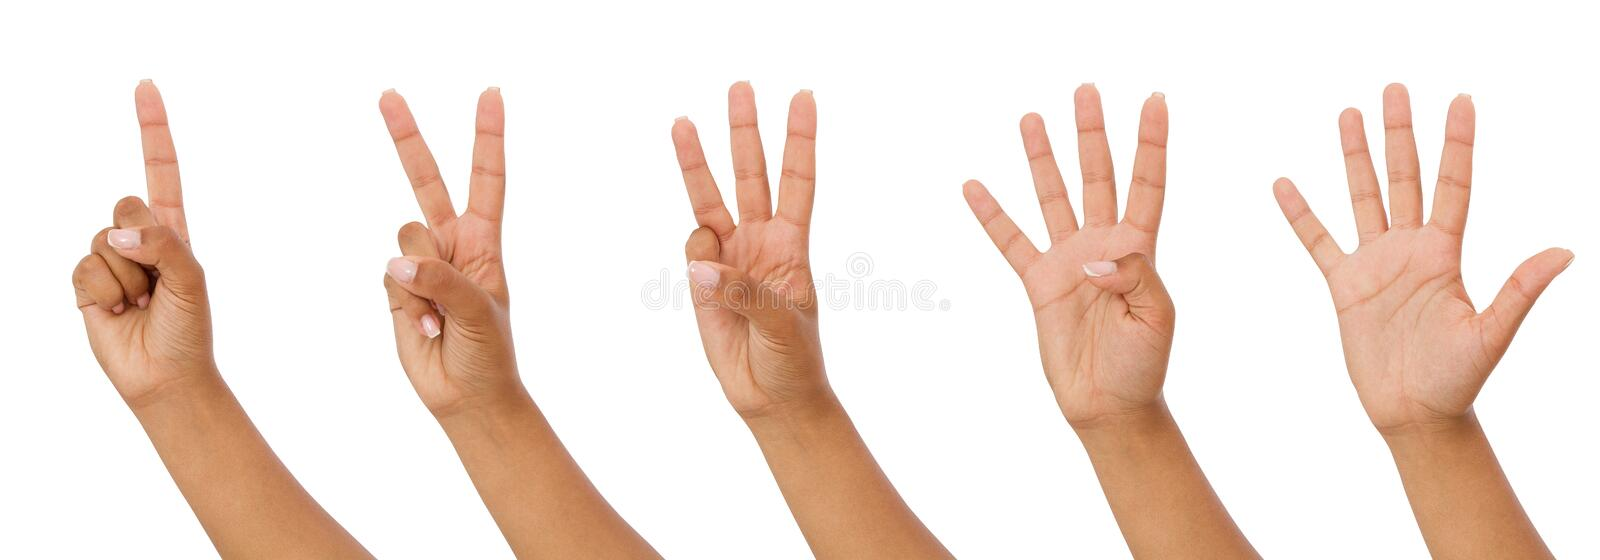 Black hand showing one to five fingers count signs isolated on white background with Clipping path included. Communication gesture royalty free stock photo